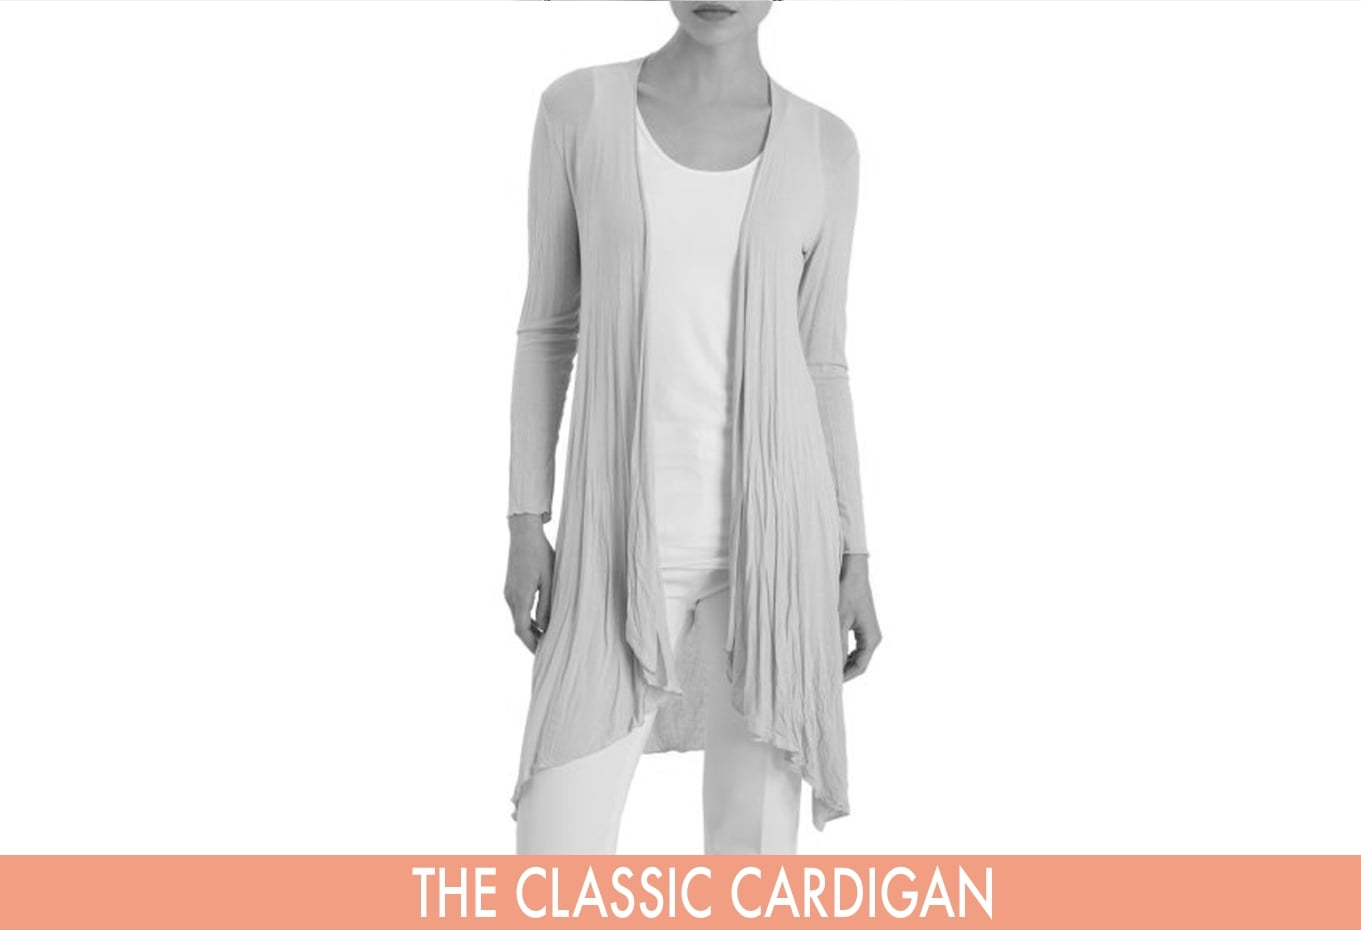 THE CLASSIC CARDIGAN